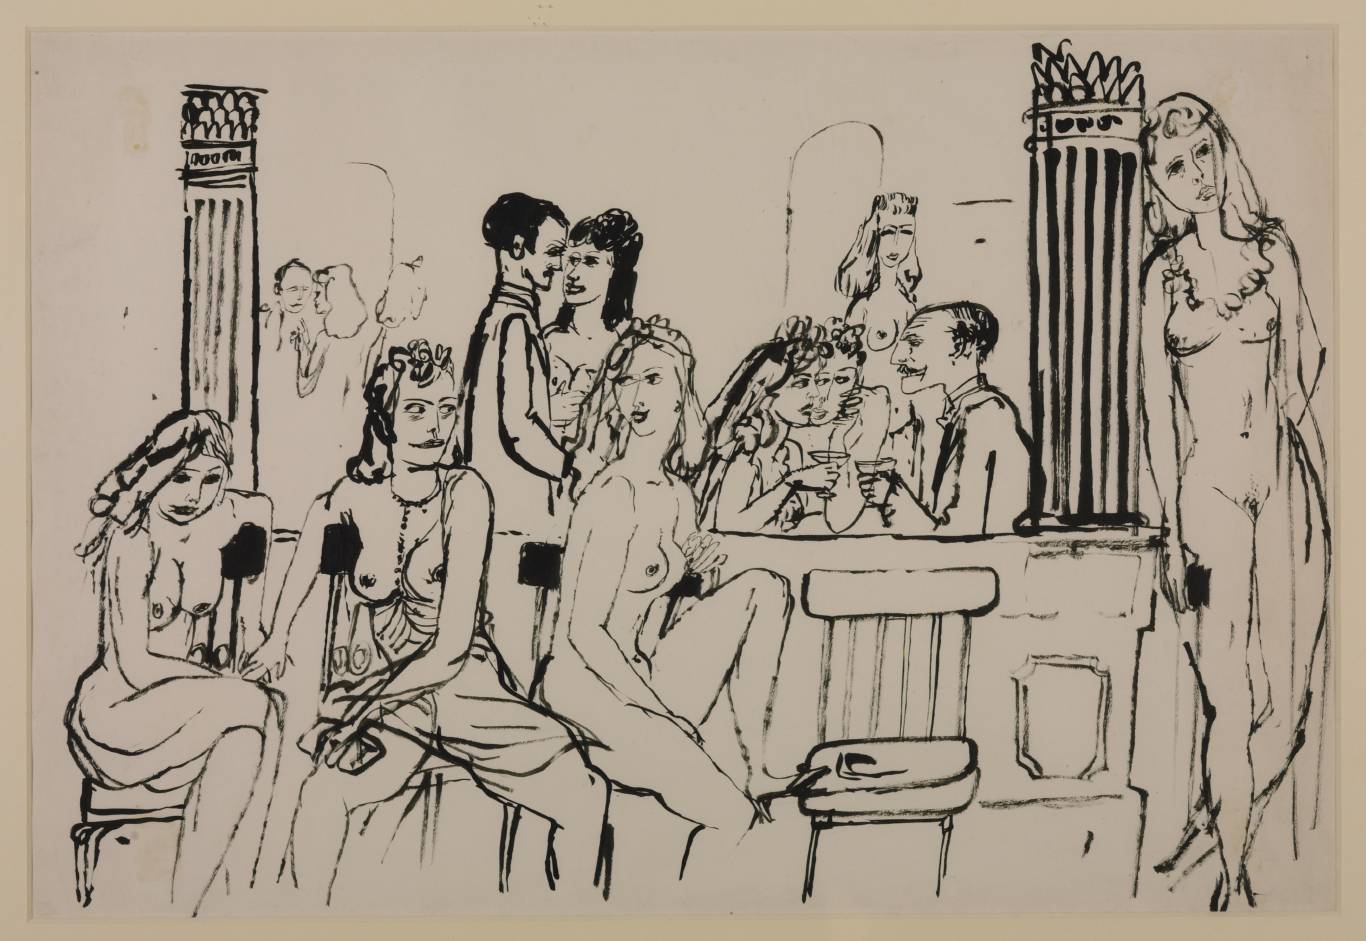 Le Sphinx, 1937 by James Boswell http://www.tate.org.uk/art/work/T03460